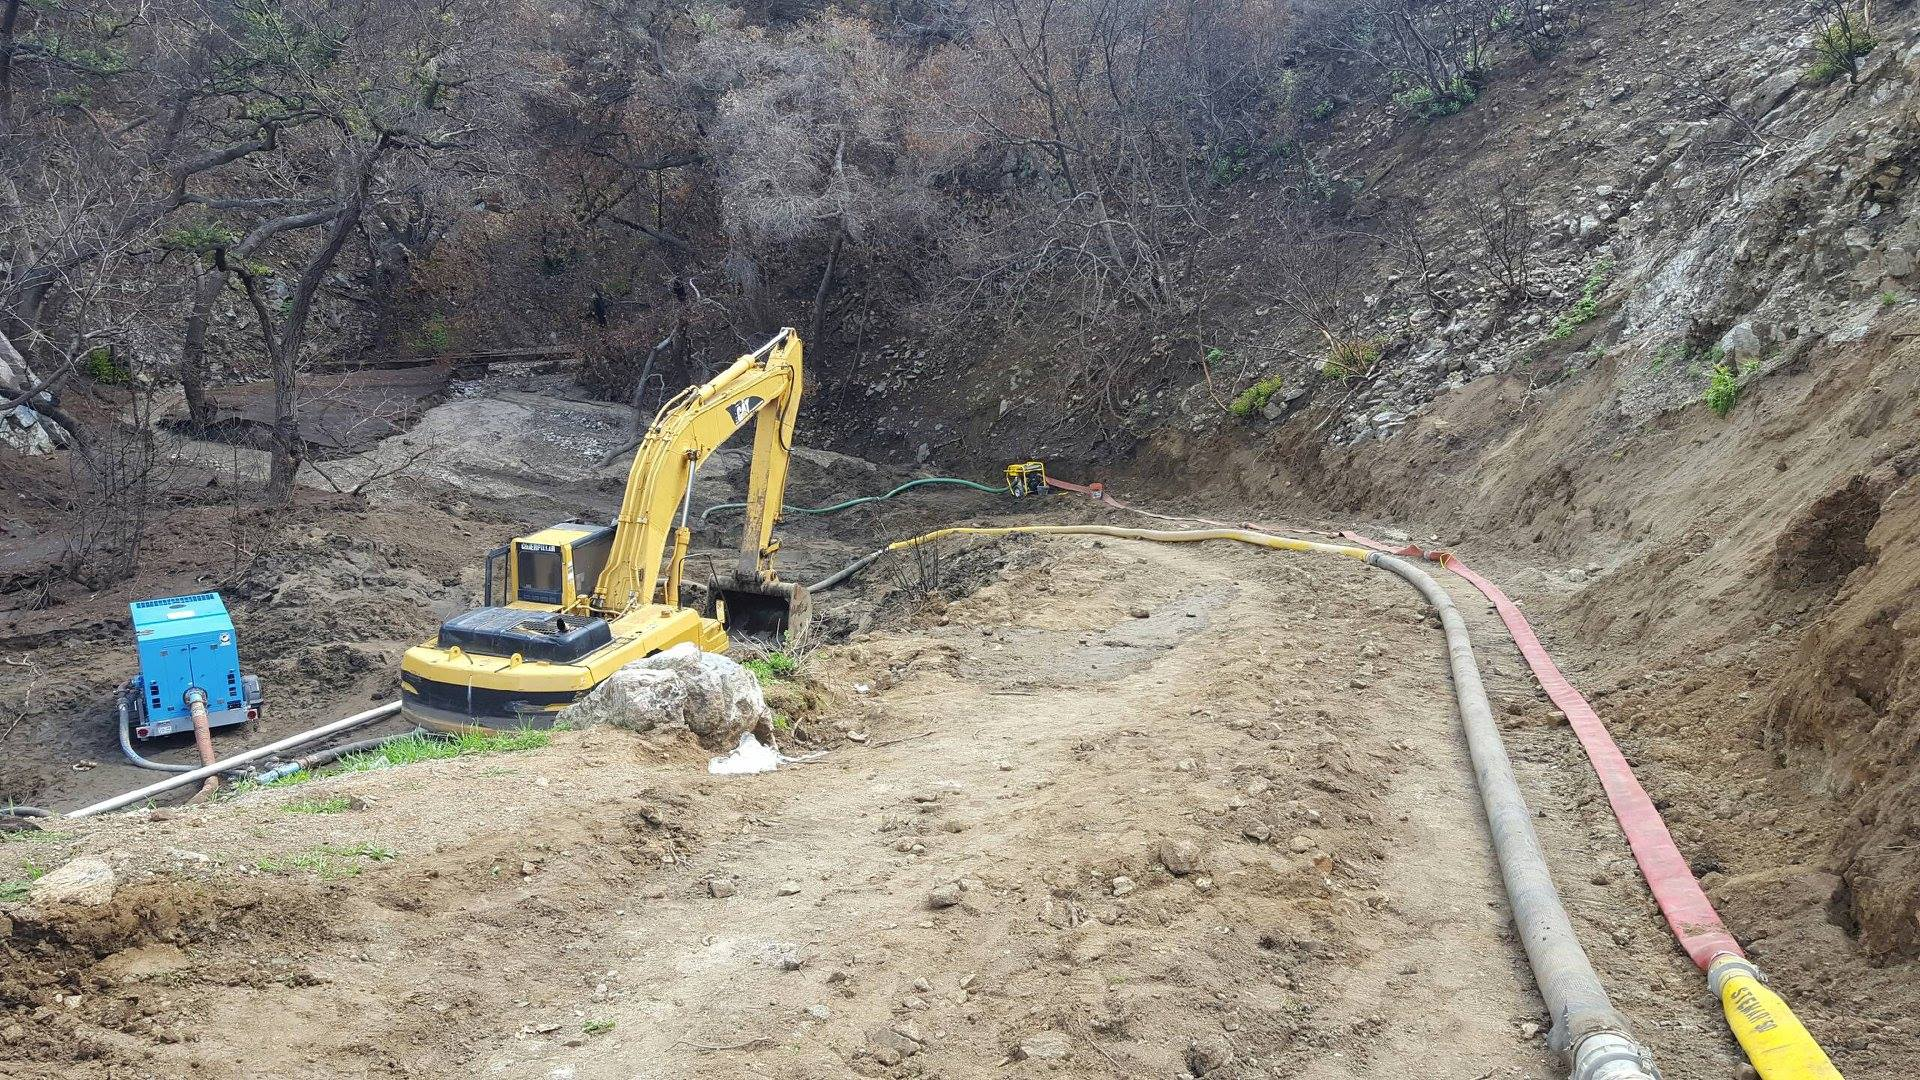 Machinery is seen being used to clear La Tuna Canyon Road after a landslide hit in this image posted to Facebook by the City of Los Angeles Bureau of Engineering on March 25, 2018.